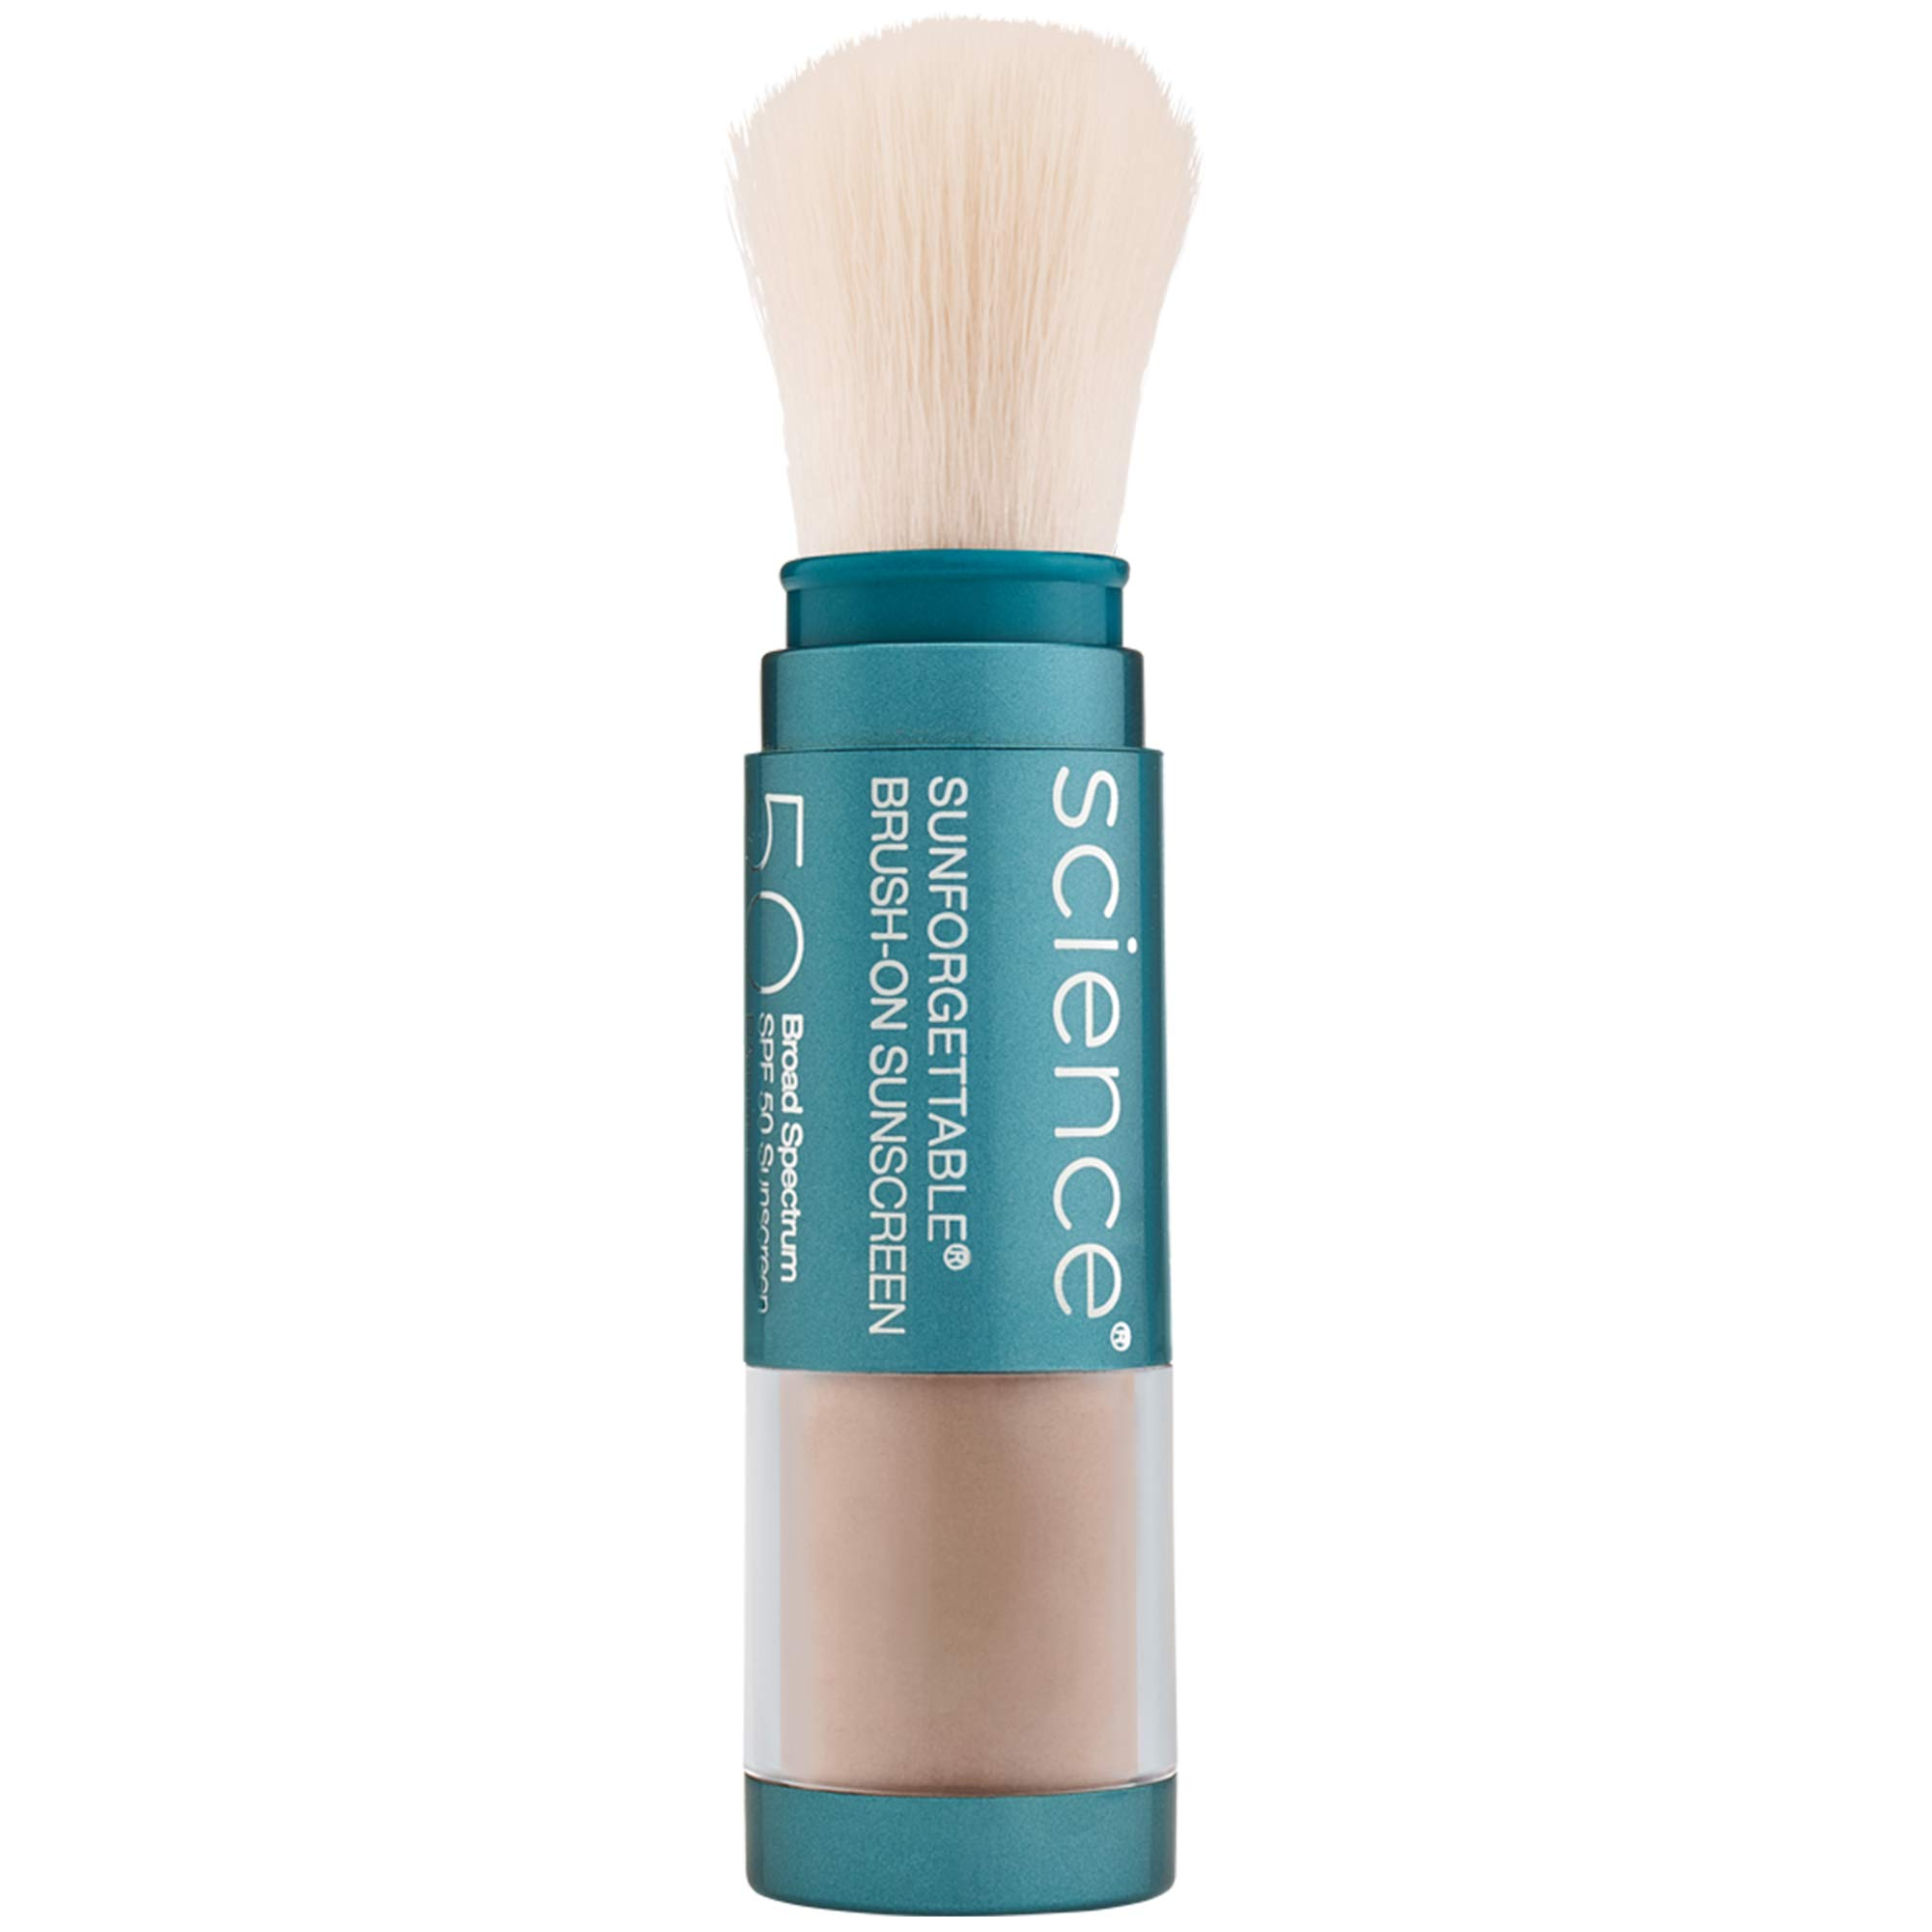 Colorescience Sunscreen Sunforgettable Sensitive Protection